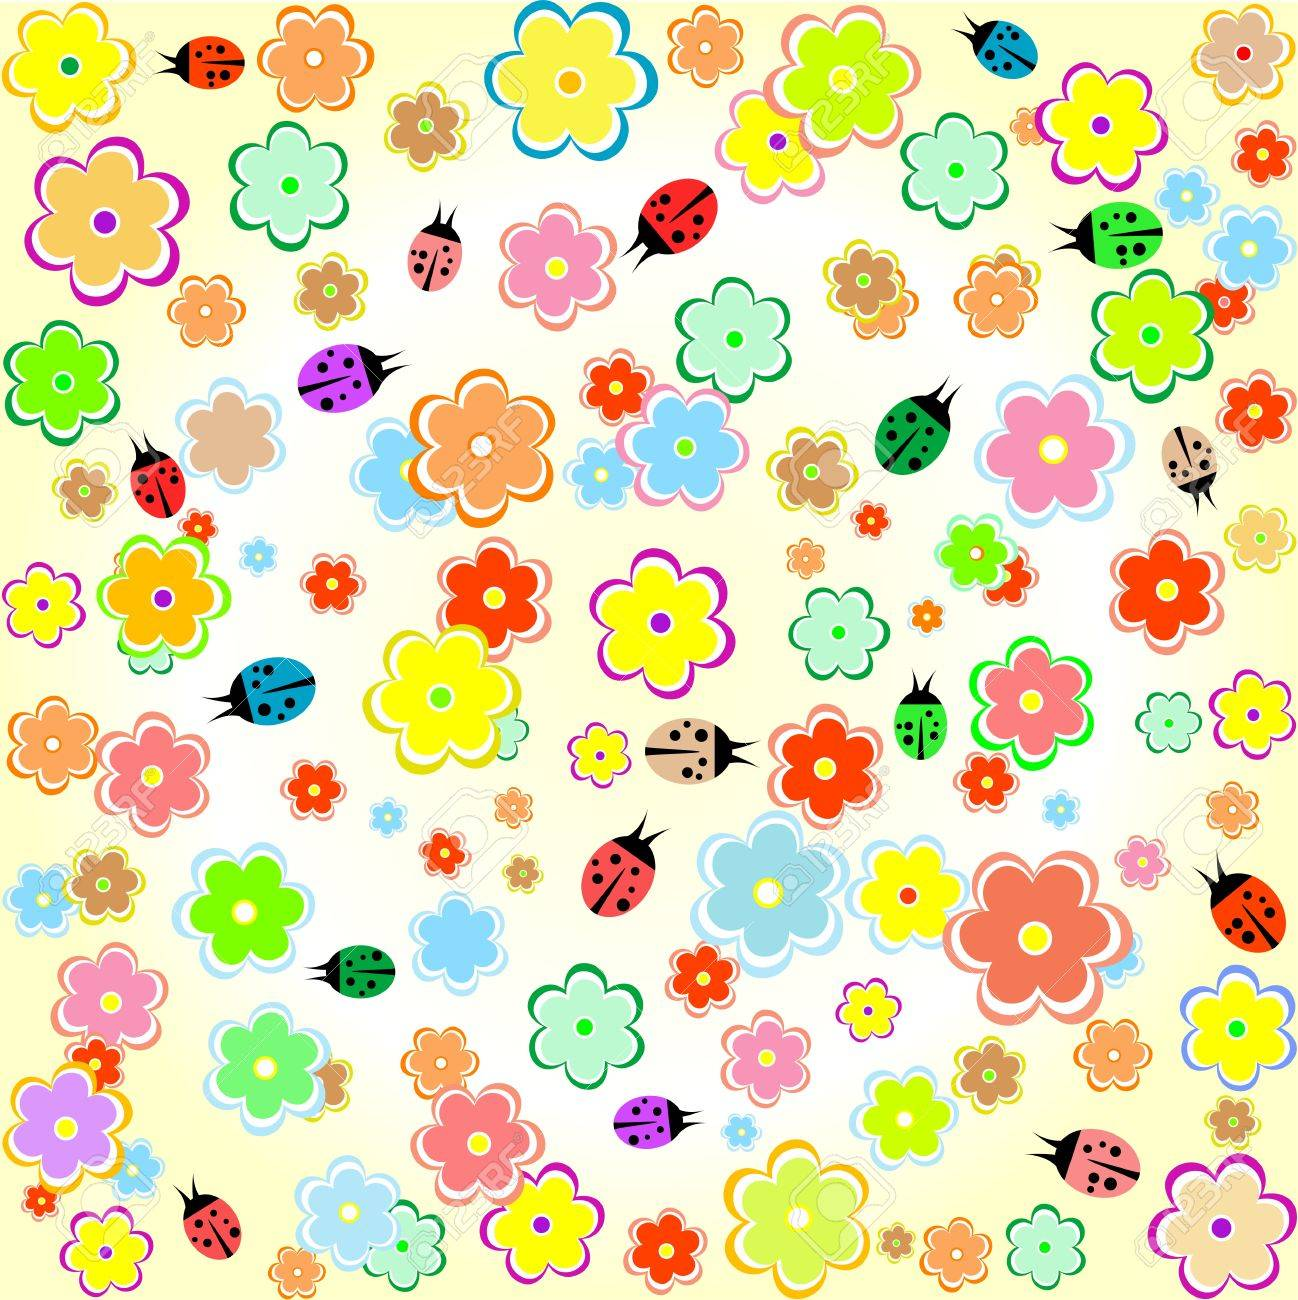 Flowers And Ladybugs Yellow Seamless Background Wallpaper Royalty 1298x1300